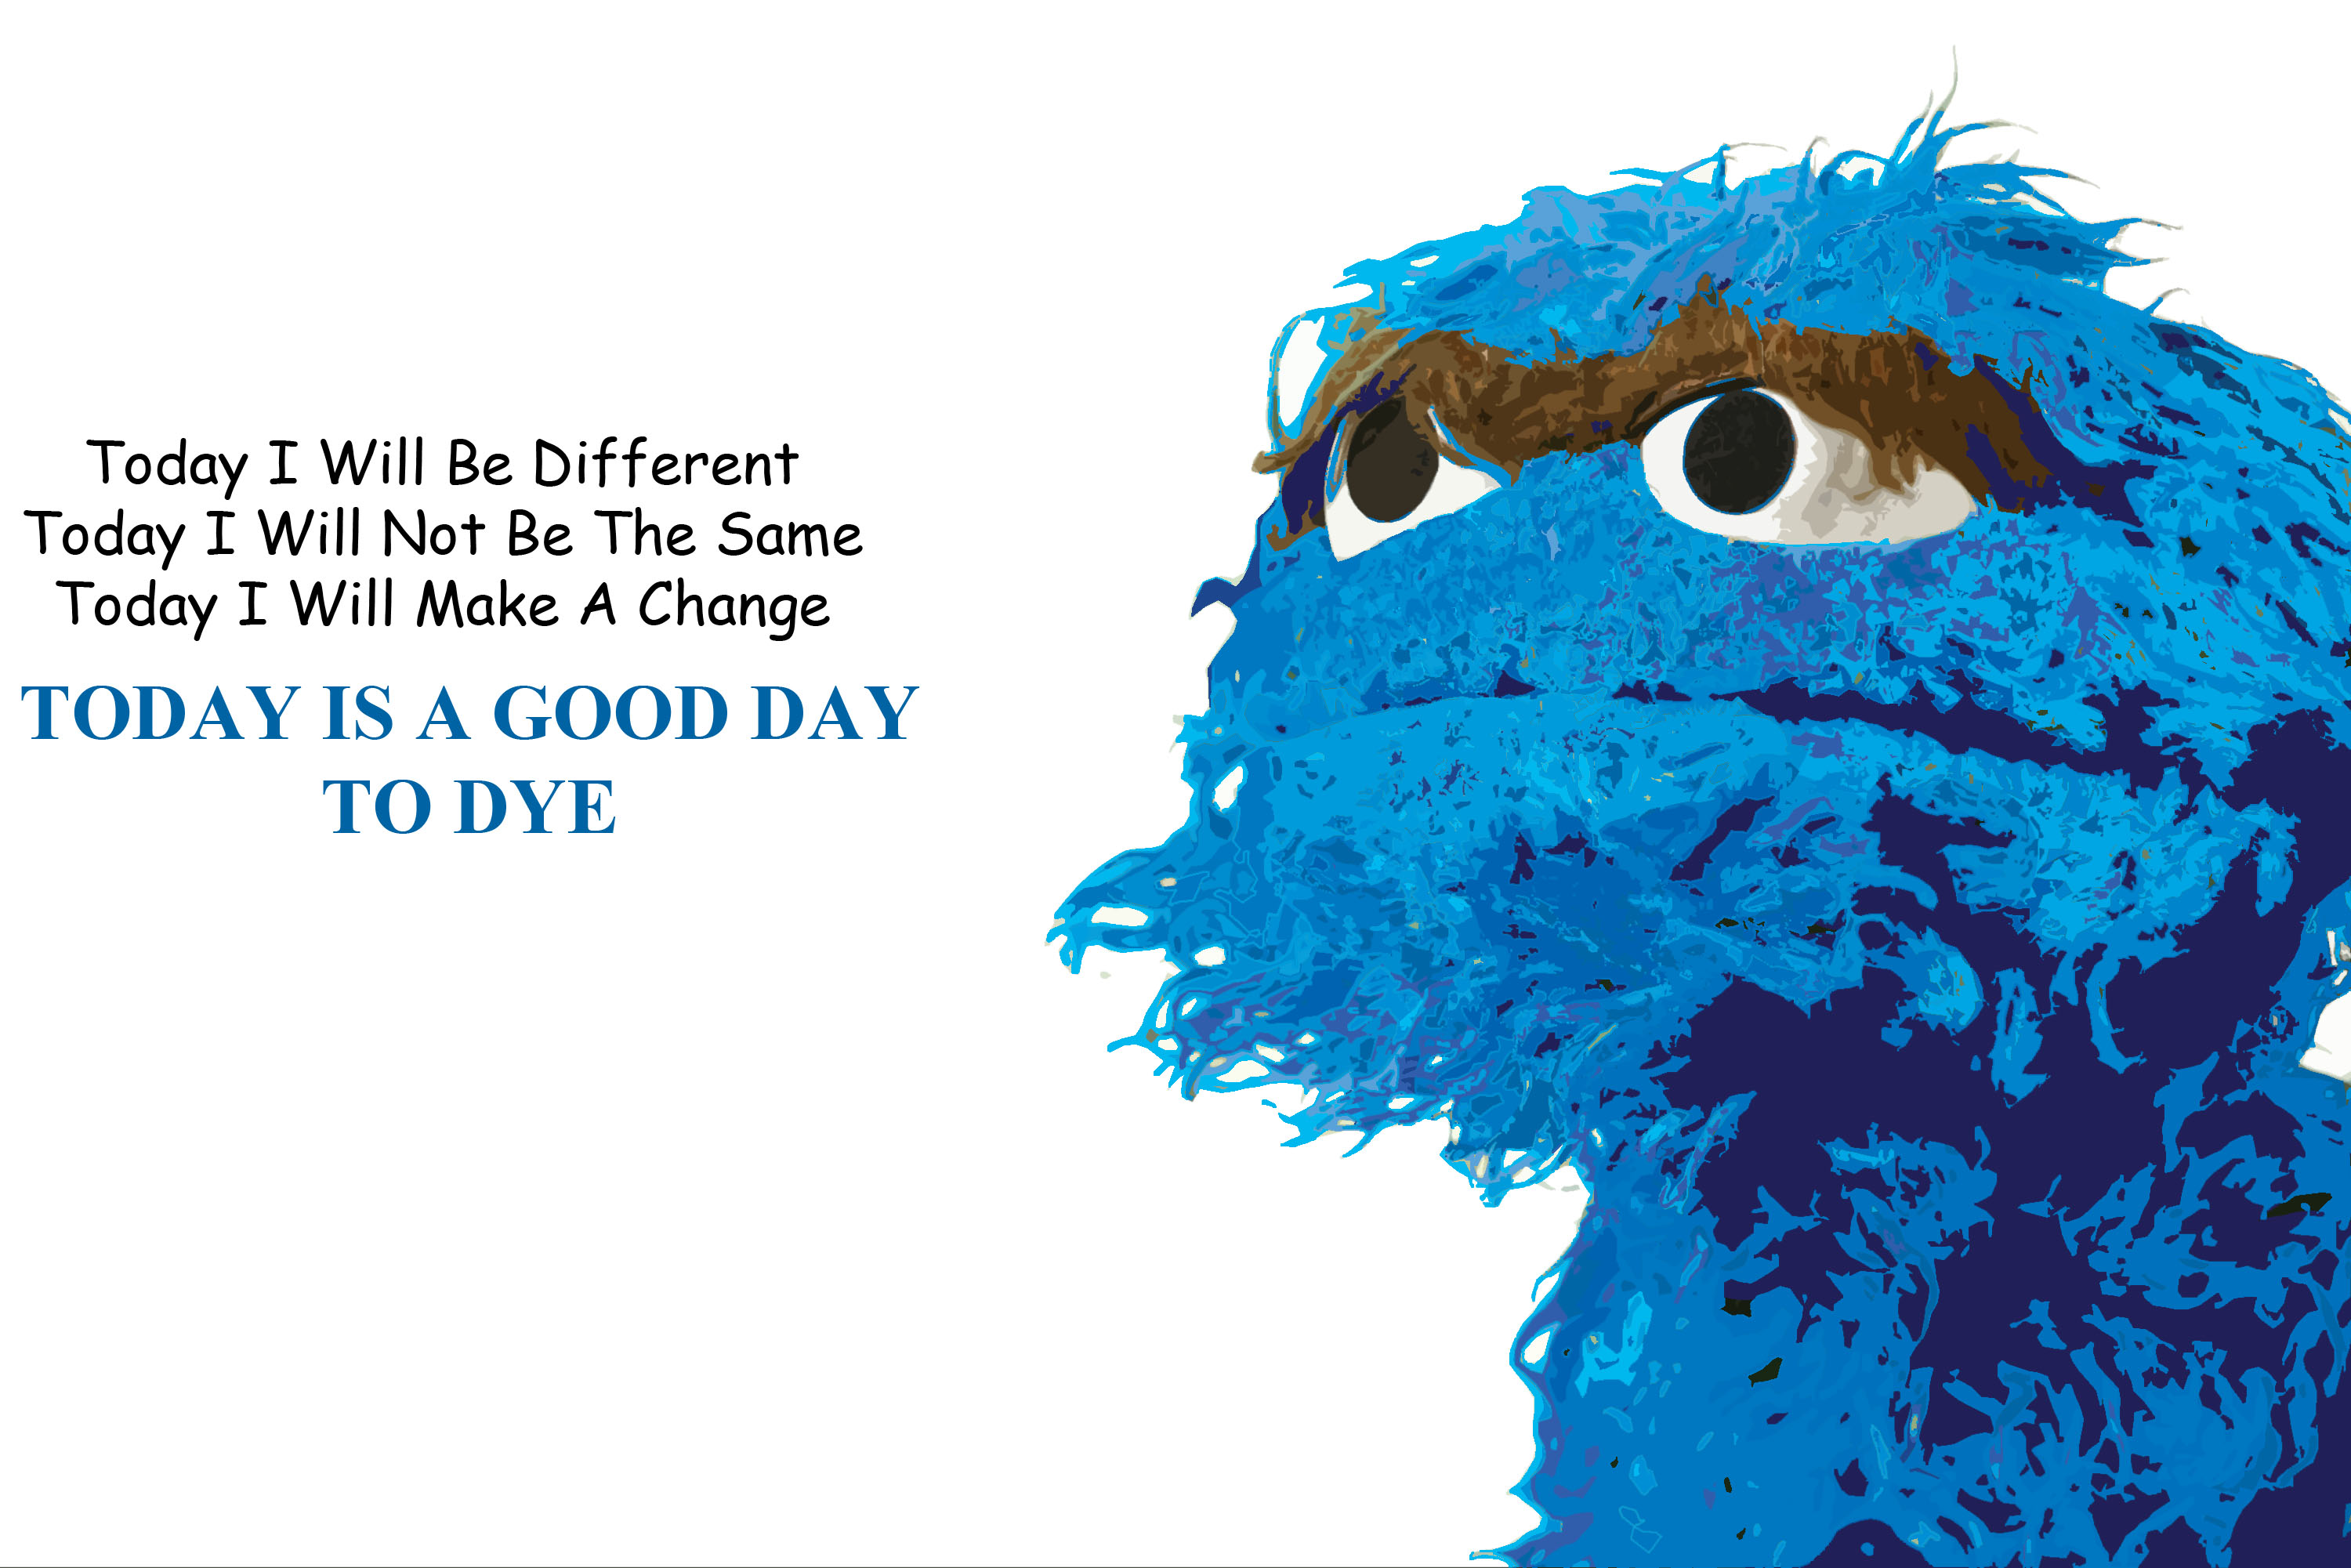 Inspirational Quote Wallpaper For Surface Pro 4 Sesame Street Full Hd Wallpaper And Background Image